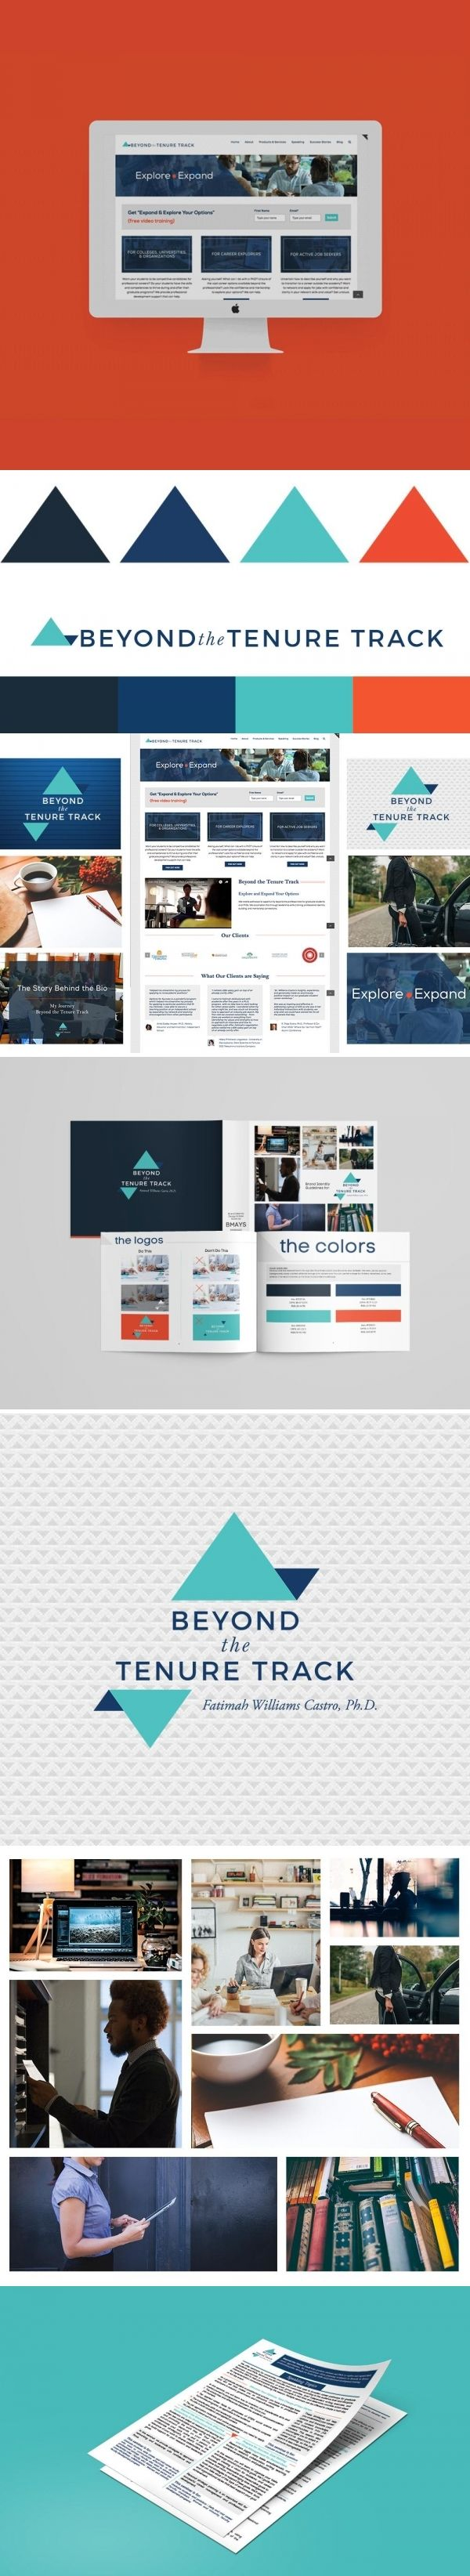 Brand Identity Design for Beyond the Tenure Track founded by Fatimah Williams-Castro   Workbook layout design   One page layout   custom icons   Wordpress Website design   Brand inspiration   Social media brand design